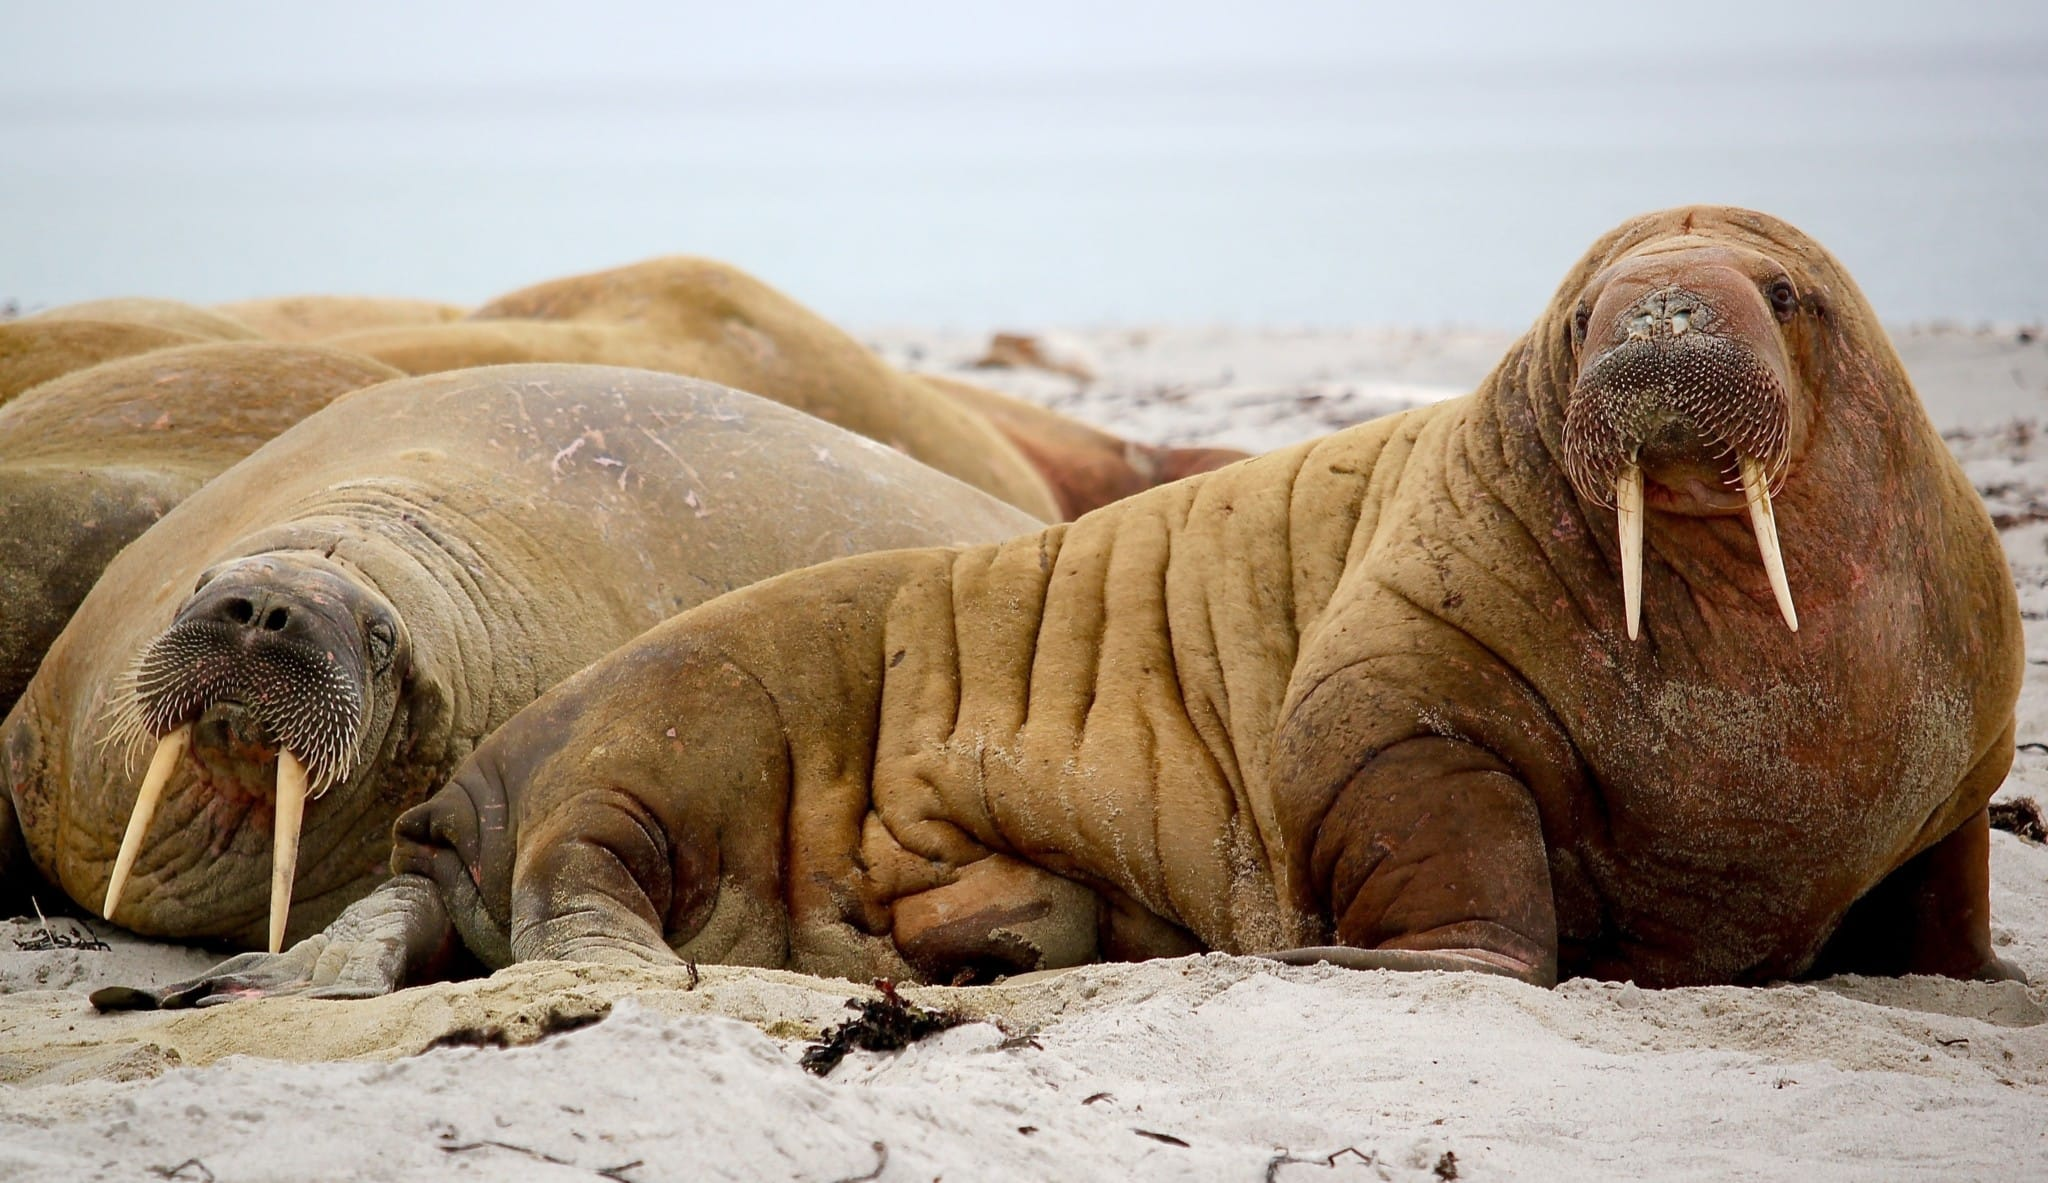 Recently the Walrus has made a comeback to its old colonies and we can admire them in their natural environment during a visit to Spitsbergen.